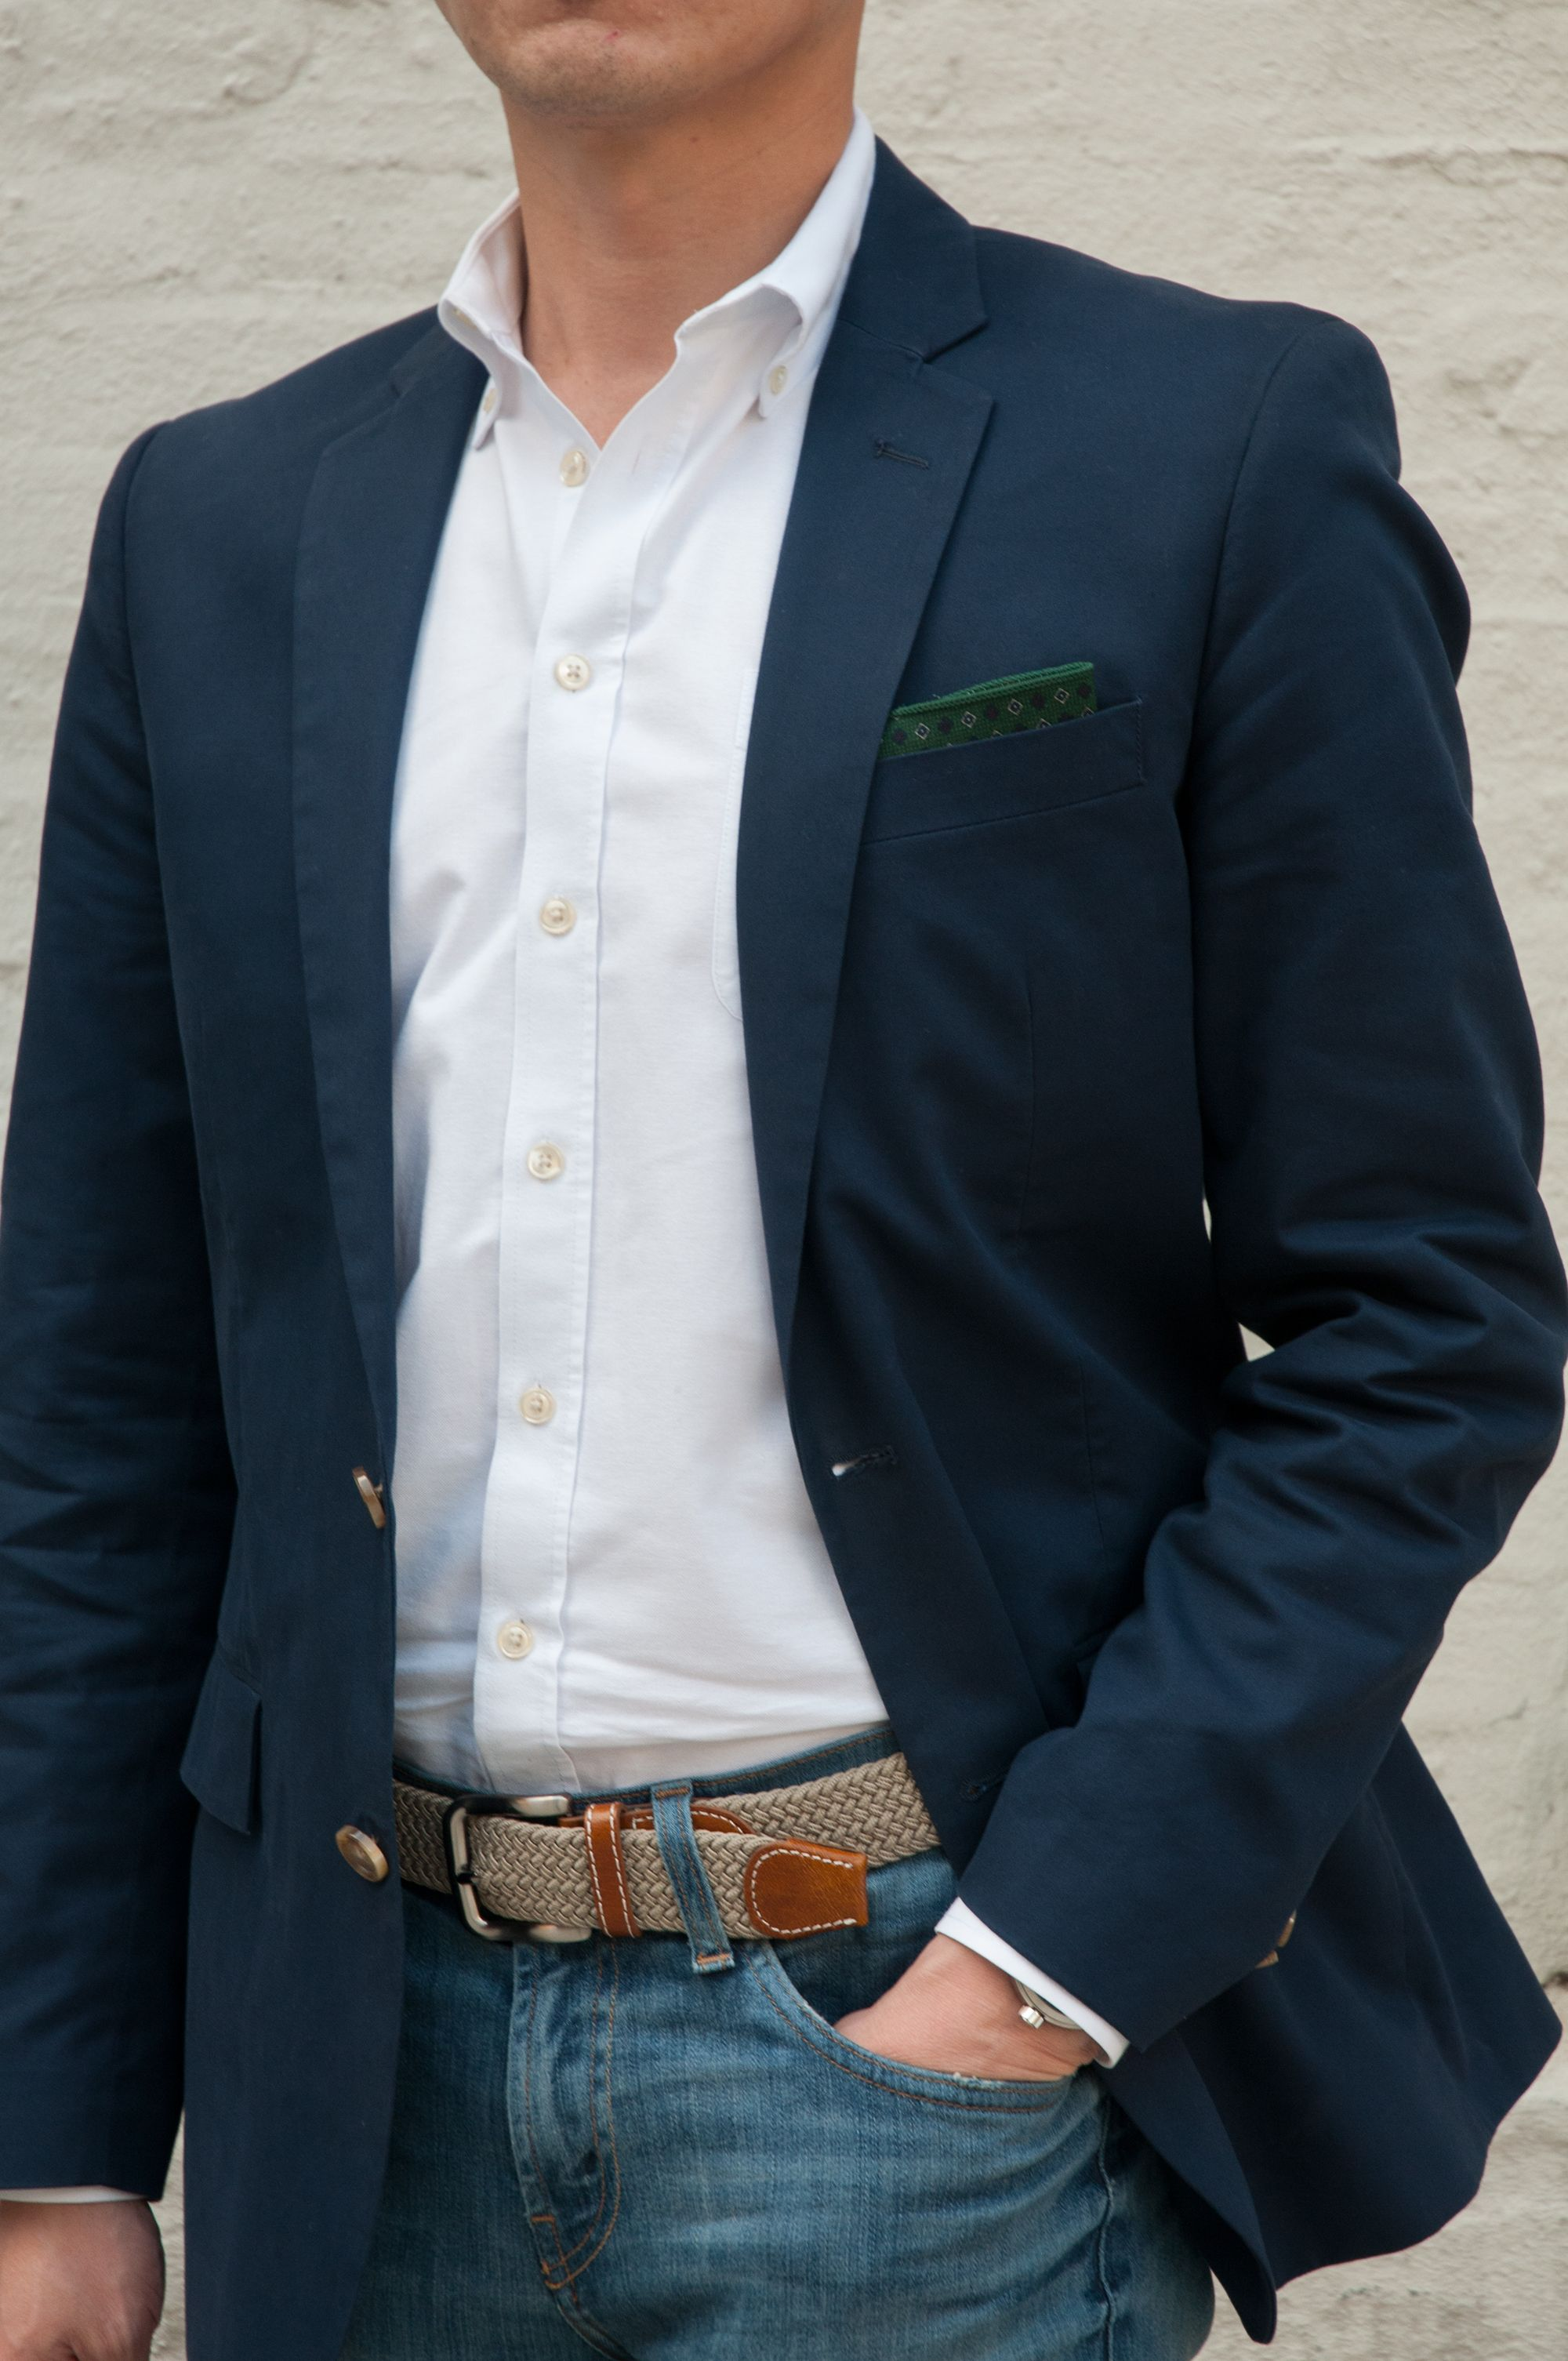 Smarten up your basic white shirt and sport coat combo